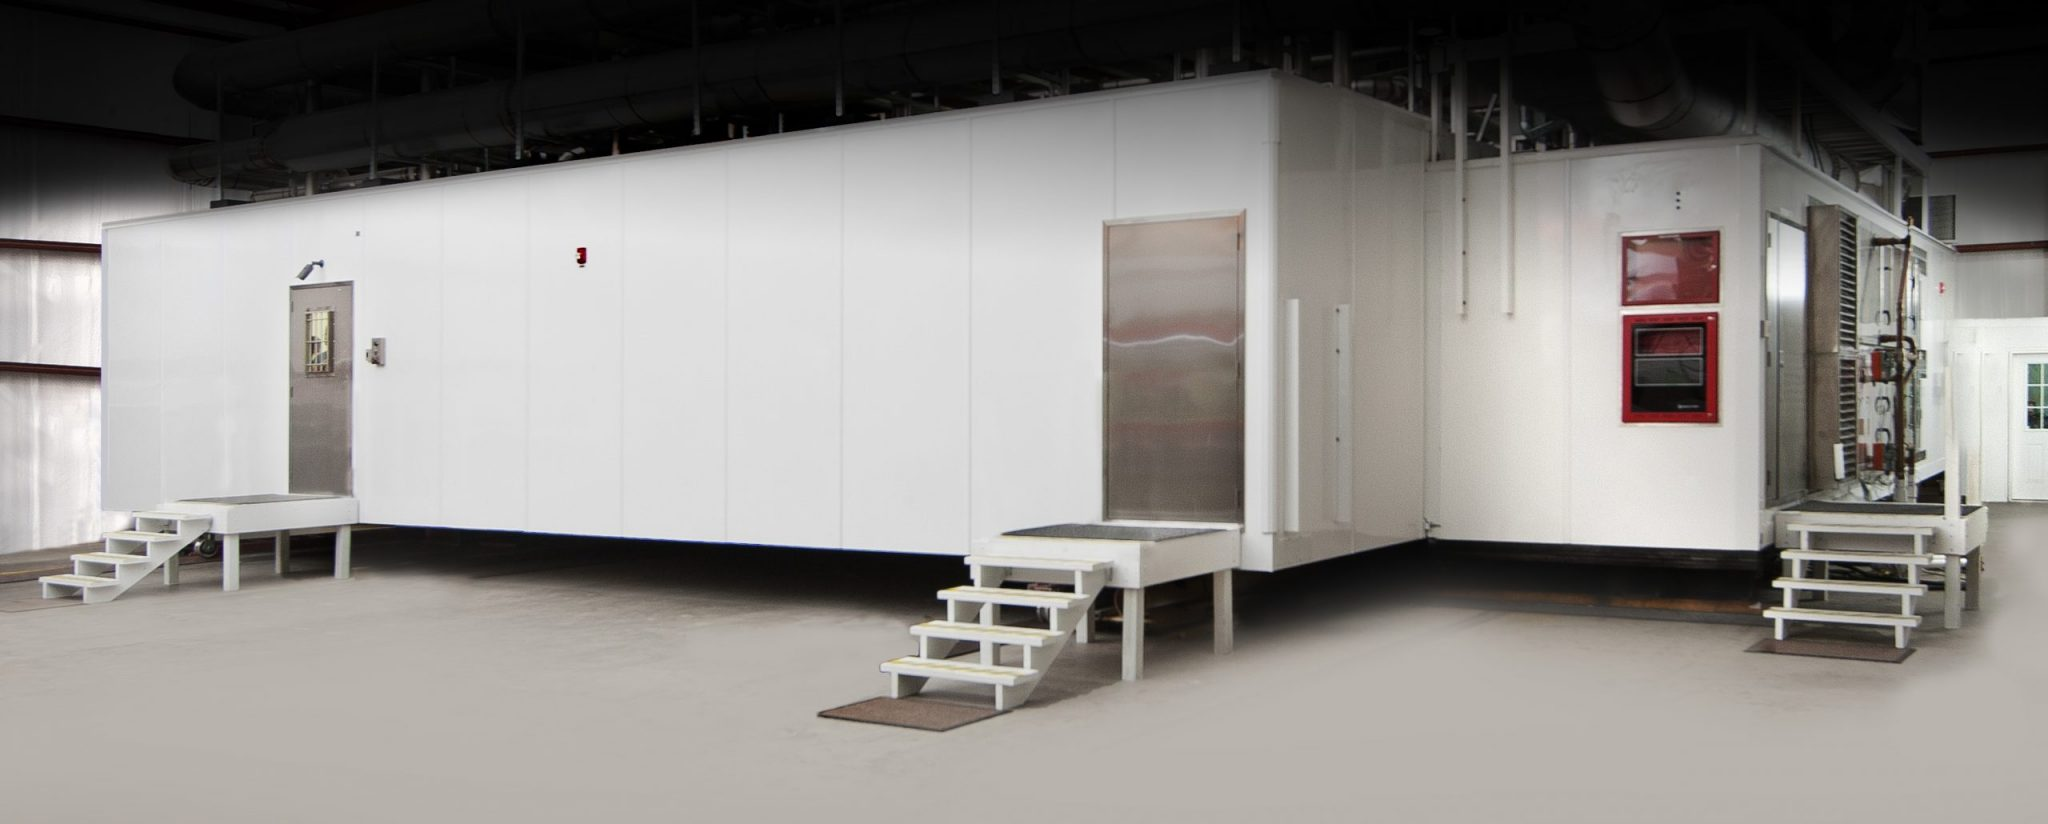 Germfree Modular Bio-containment Laboratory